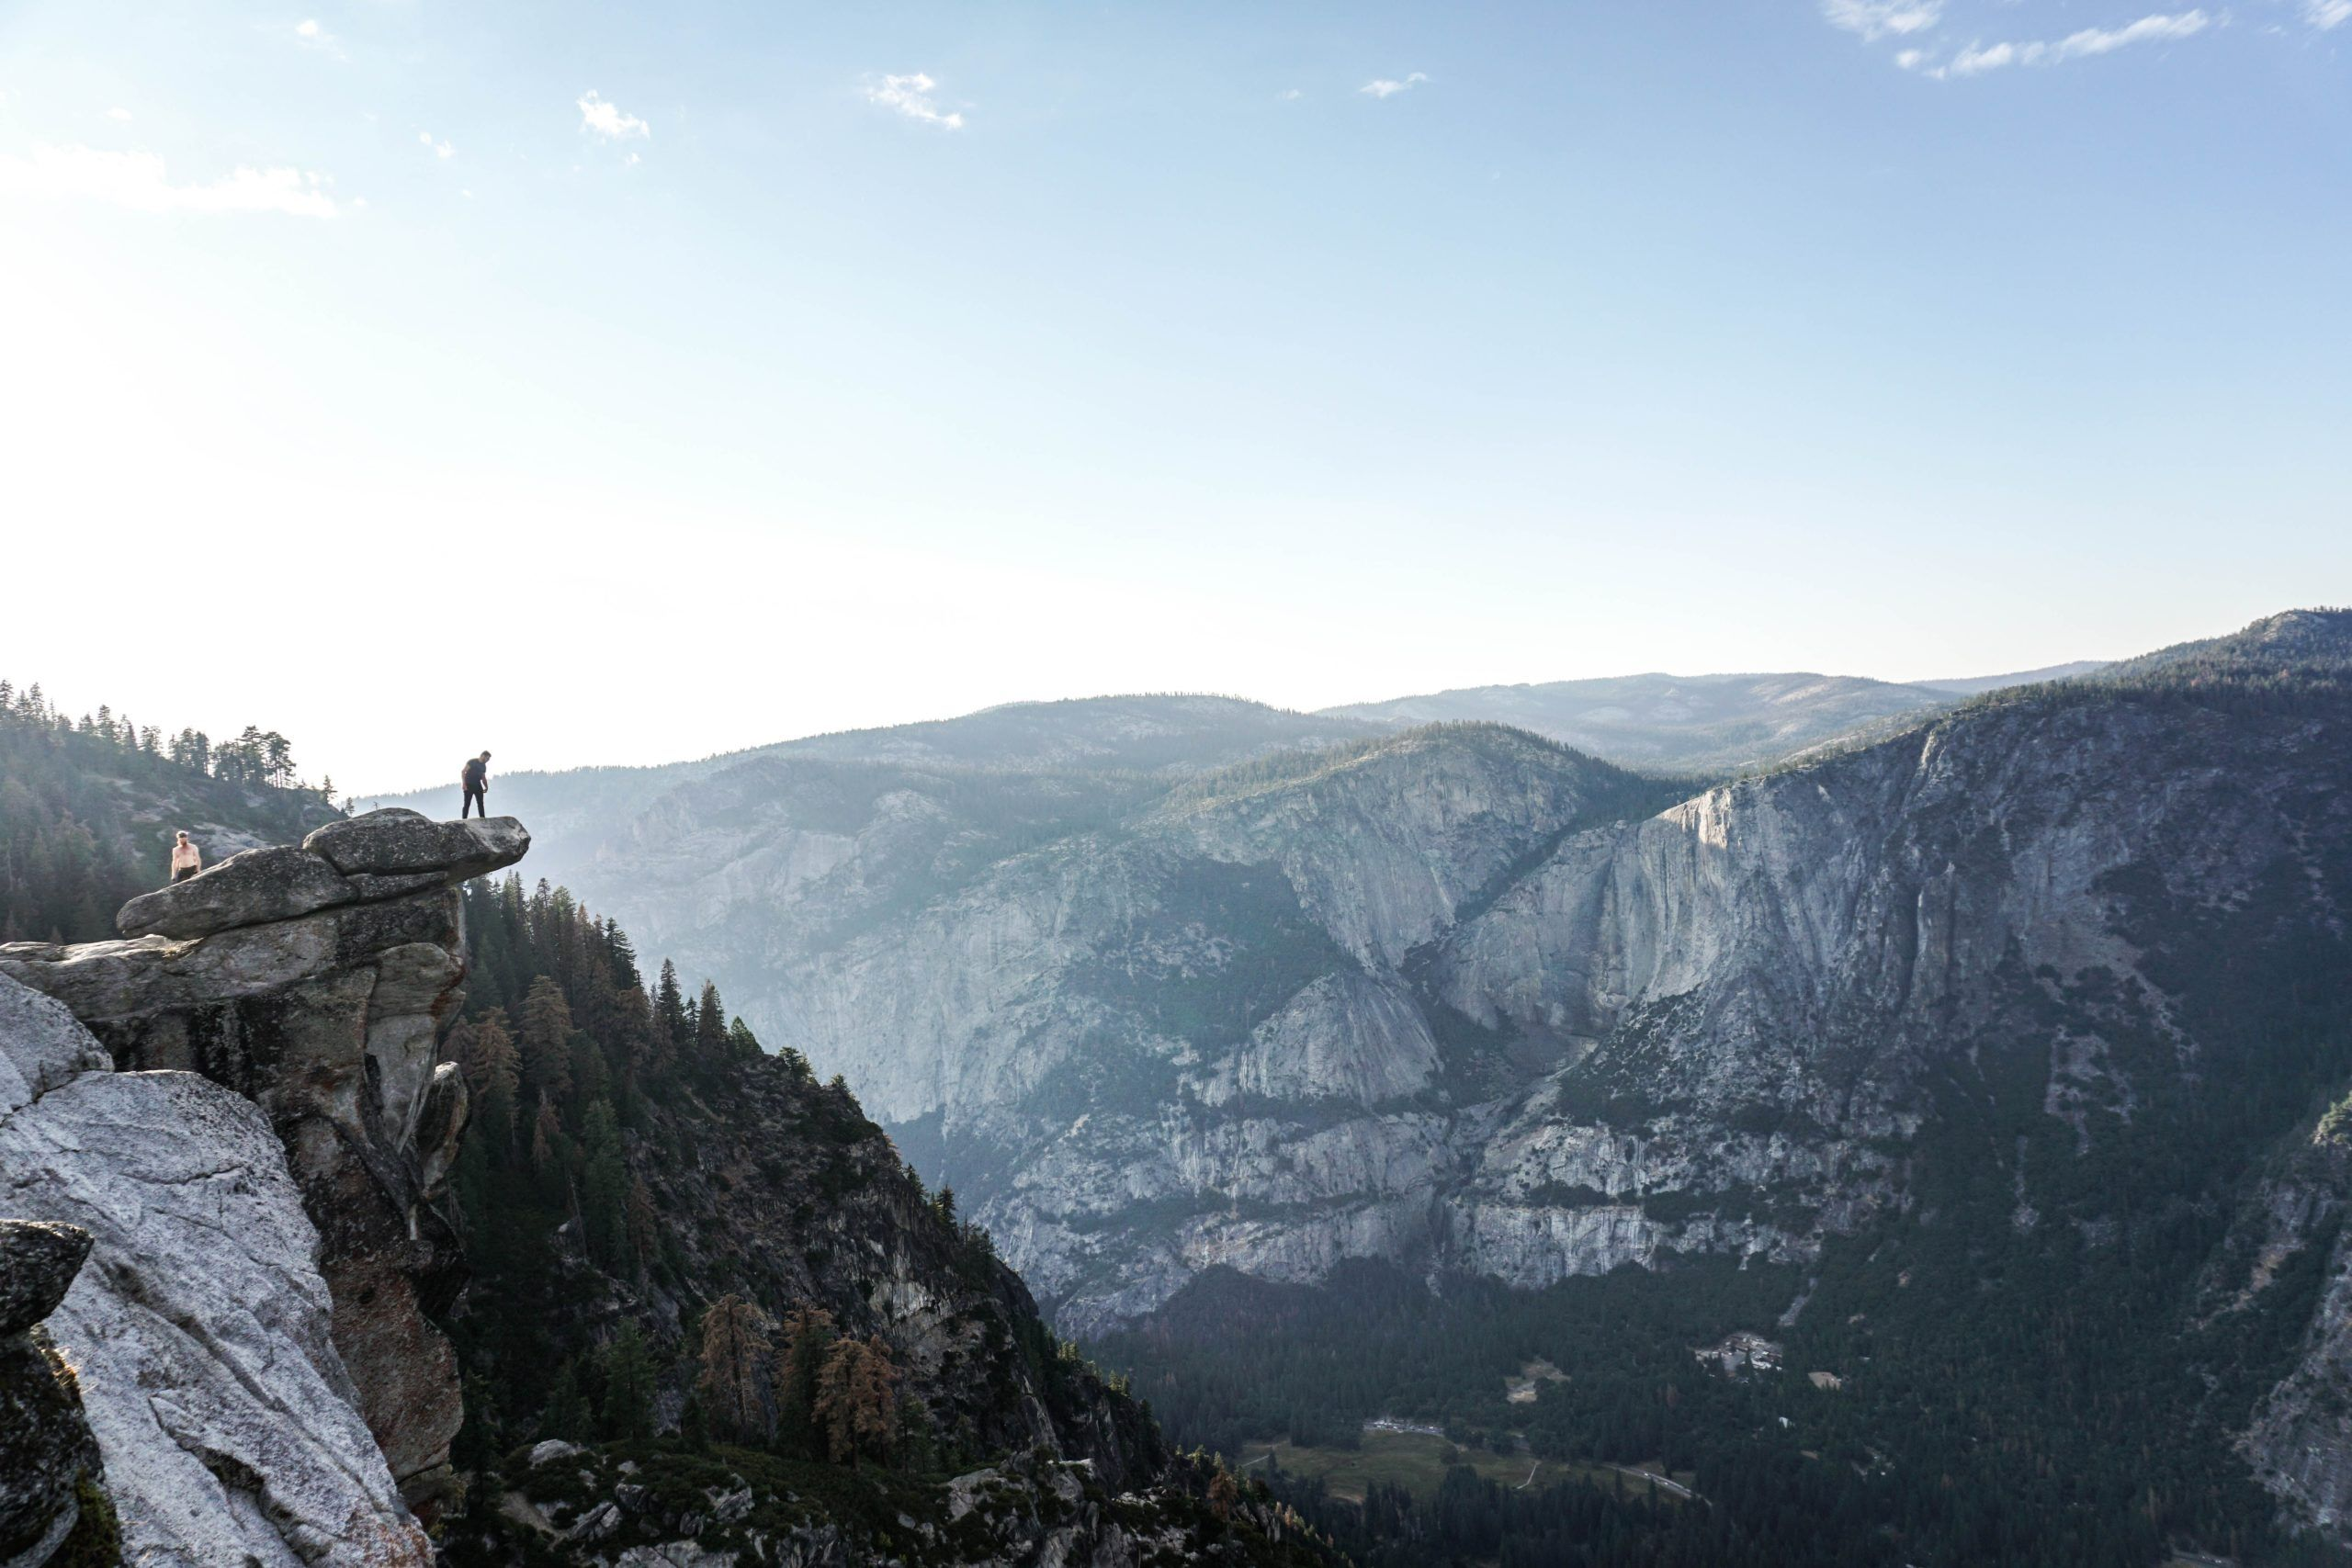 Sierra Ventures 2019 Year in Review - person standing on a mountain edge looking over a valley.